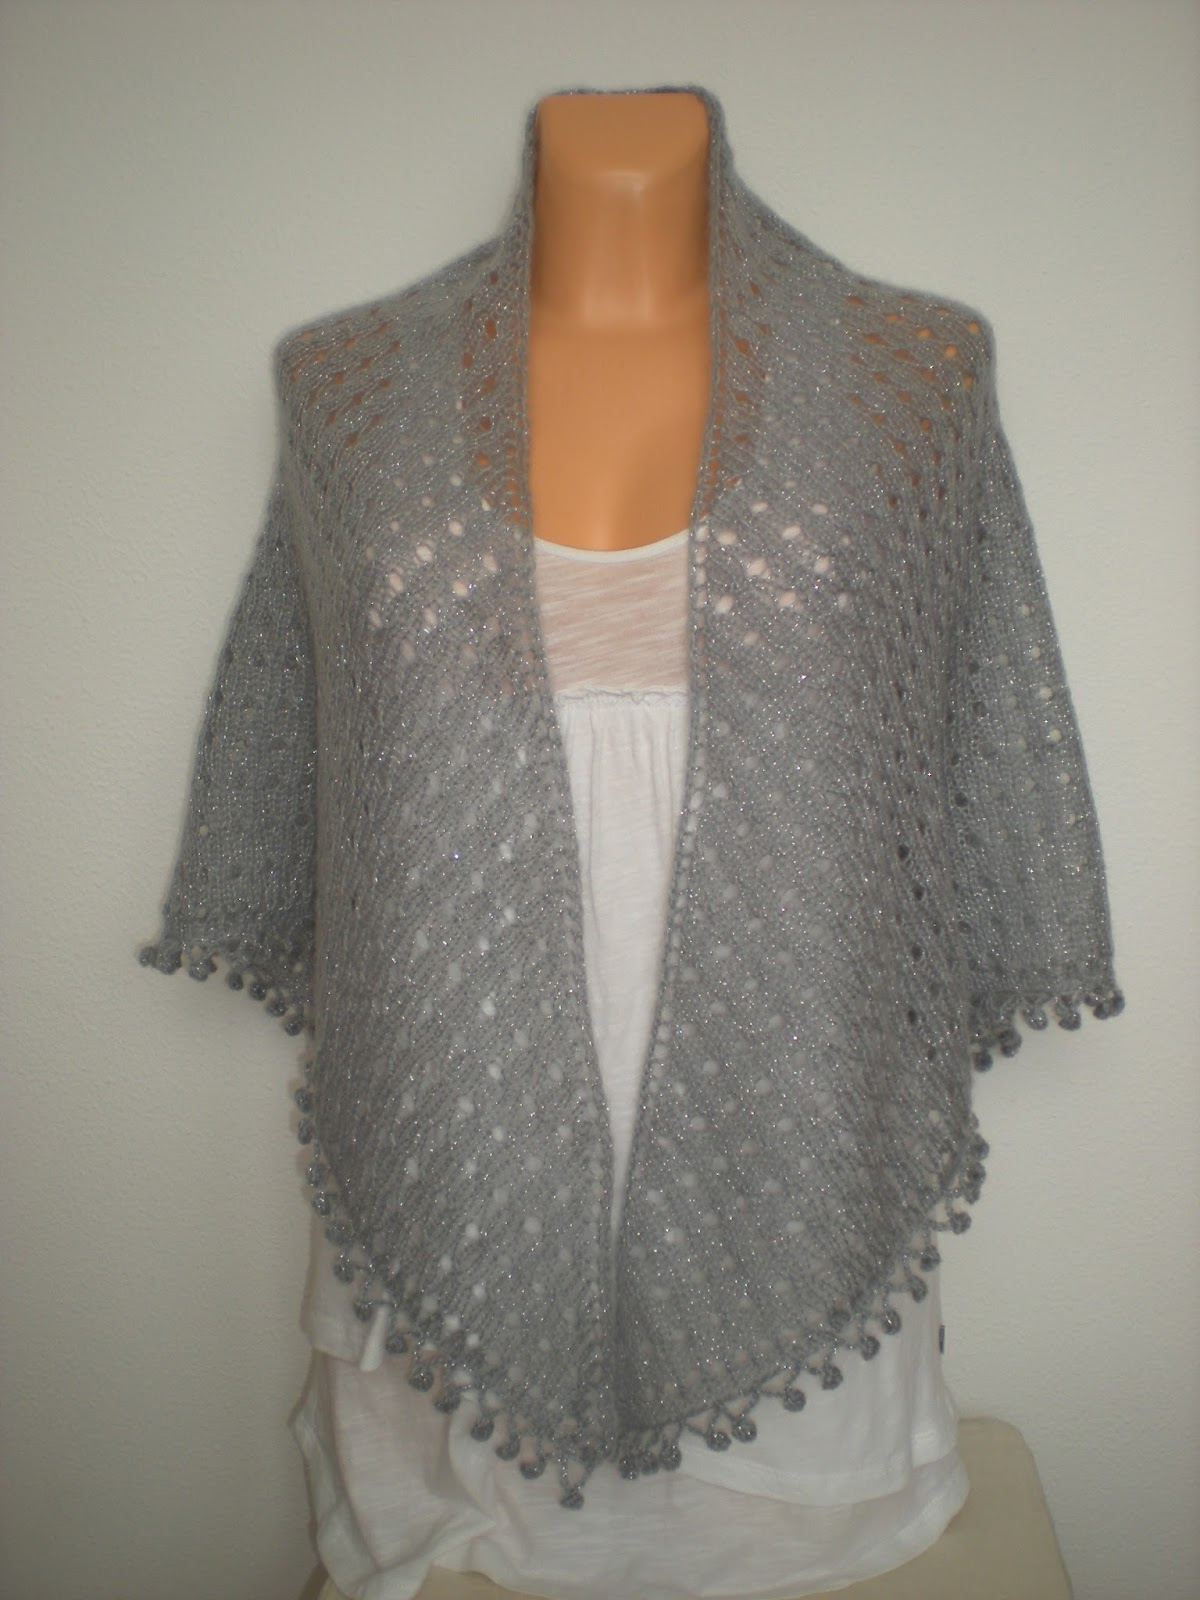 Knitted Shawl Patterns Free : EmmHouse: Knitted shawl   free pattern